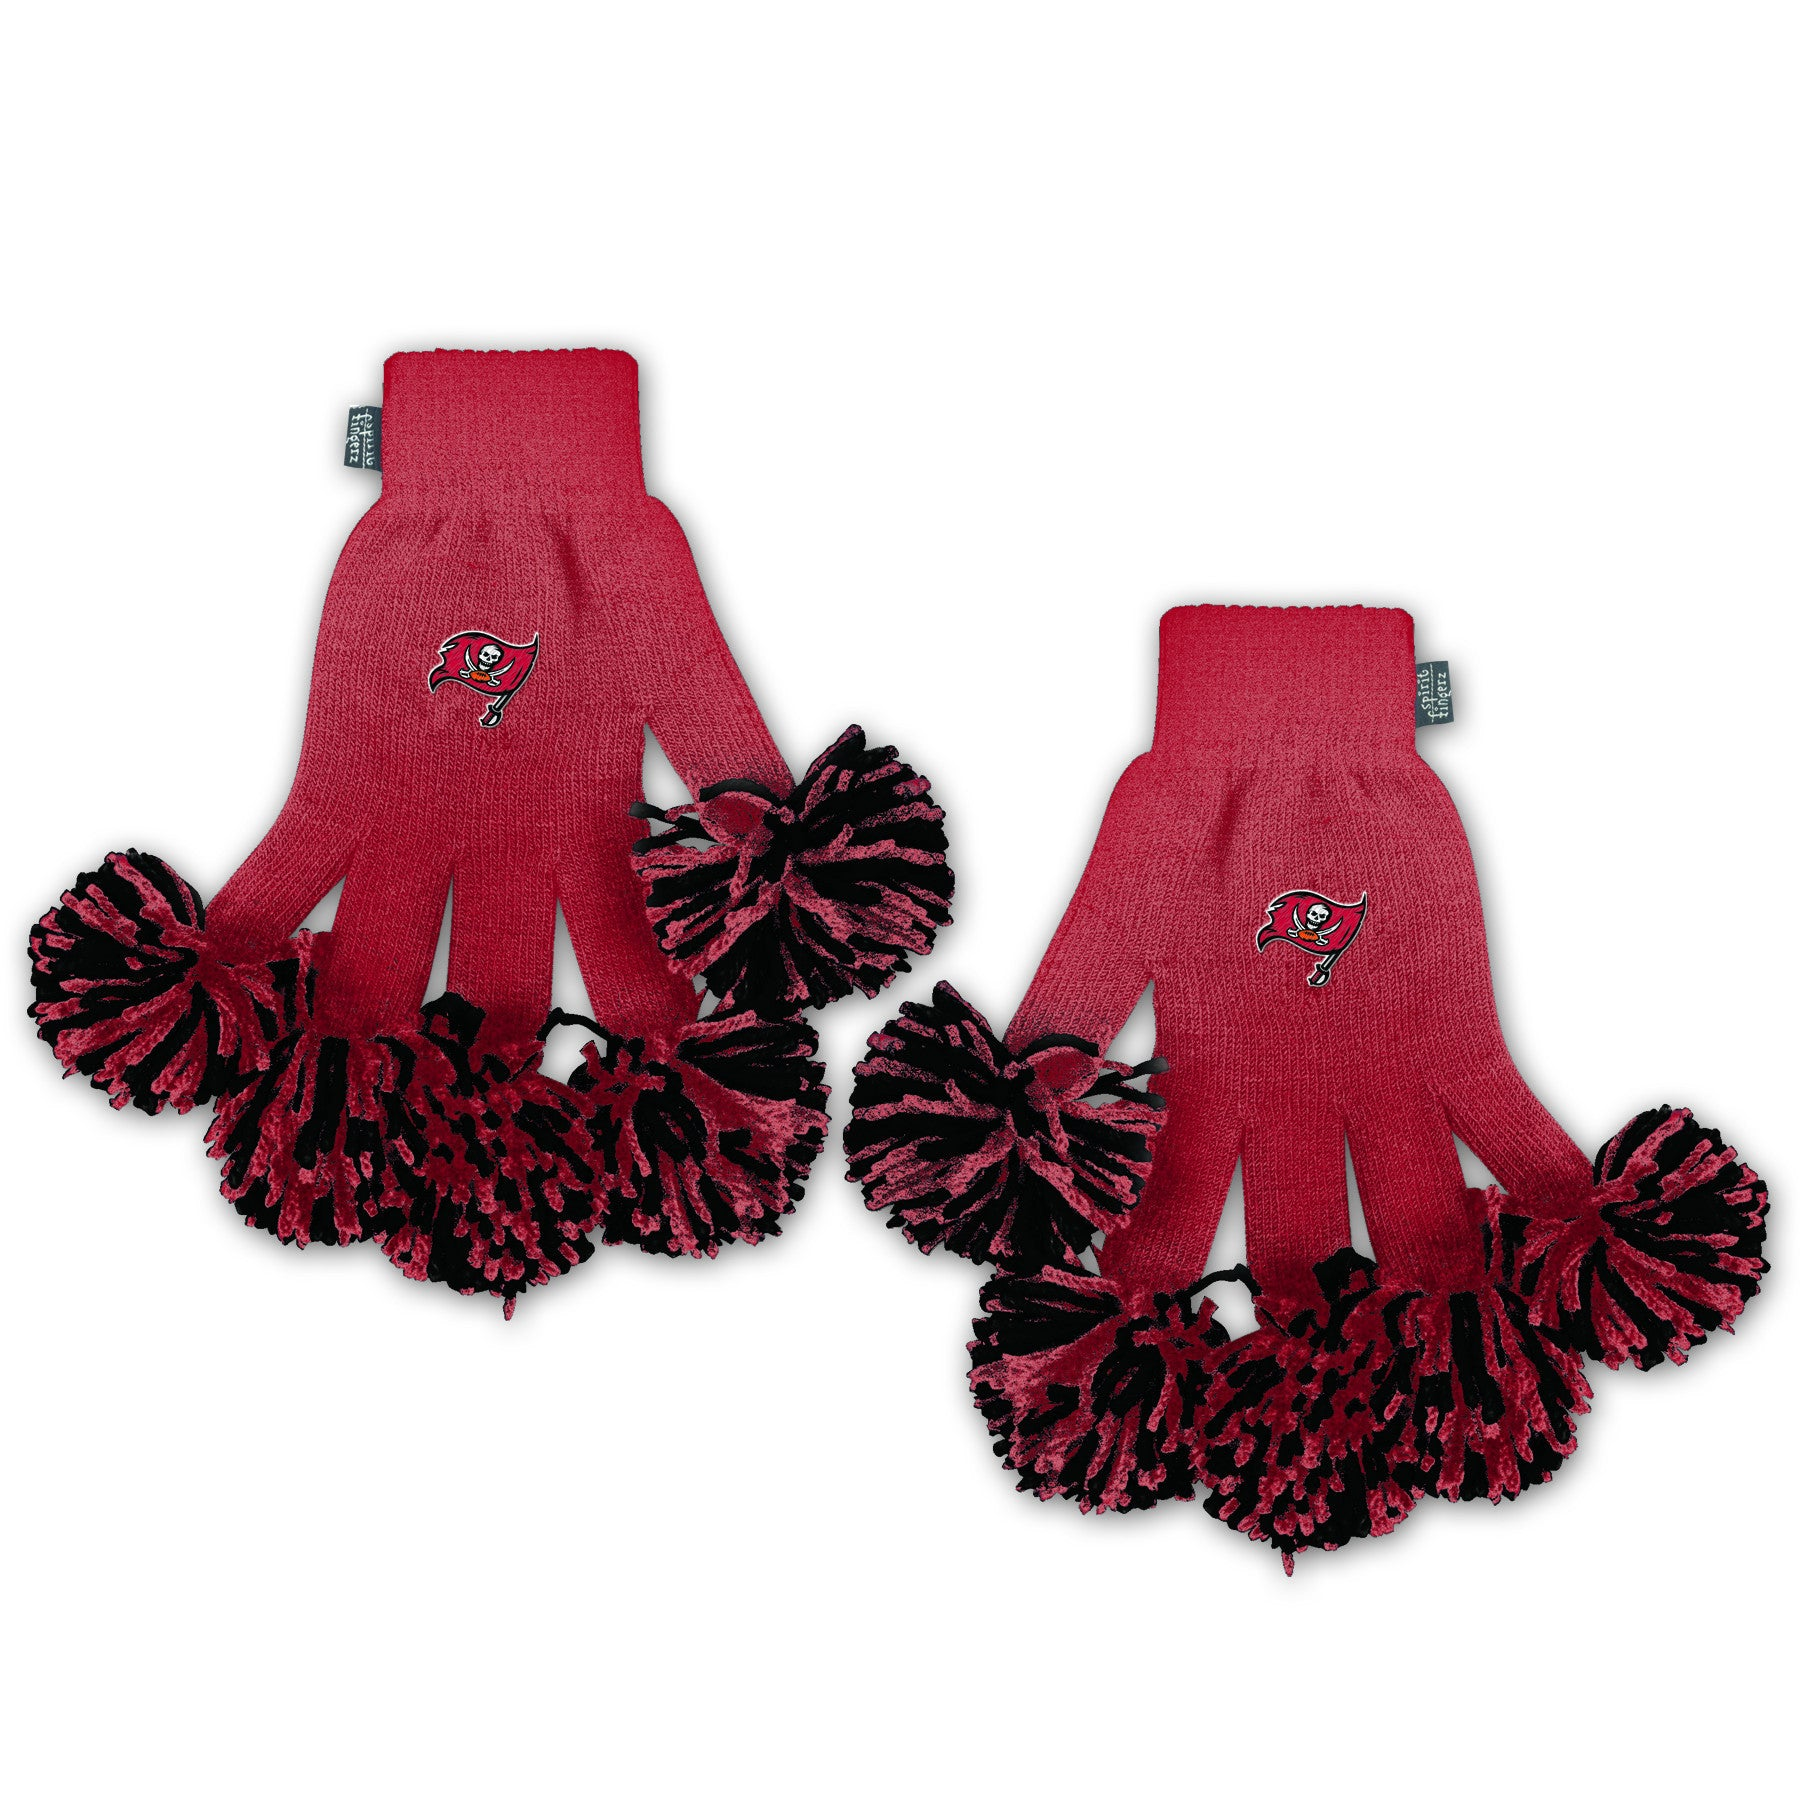 Tampa Bay Buccaneers NFL Spirit Fingerz Cheerleading Pom-Pom Gloves